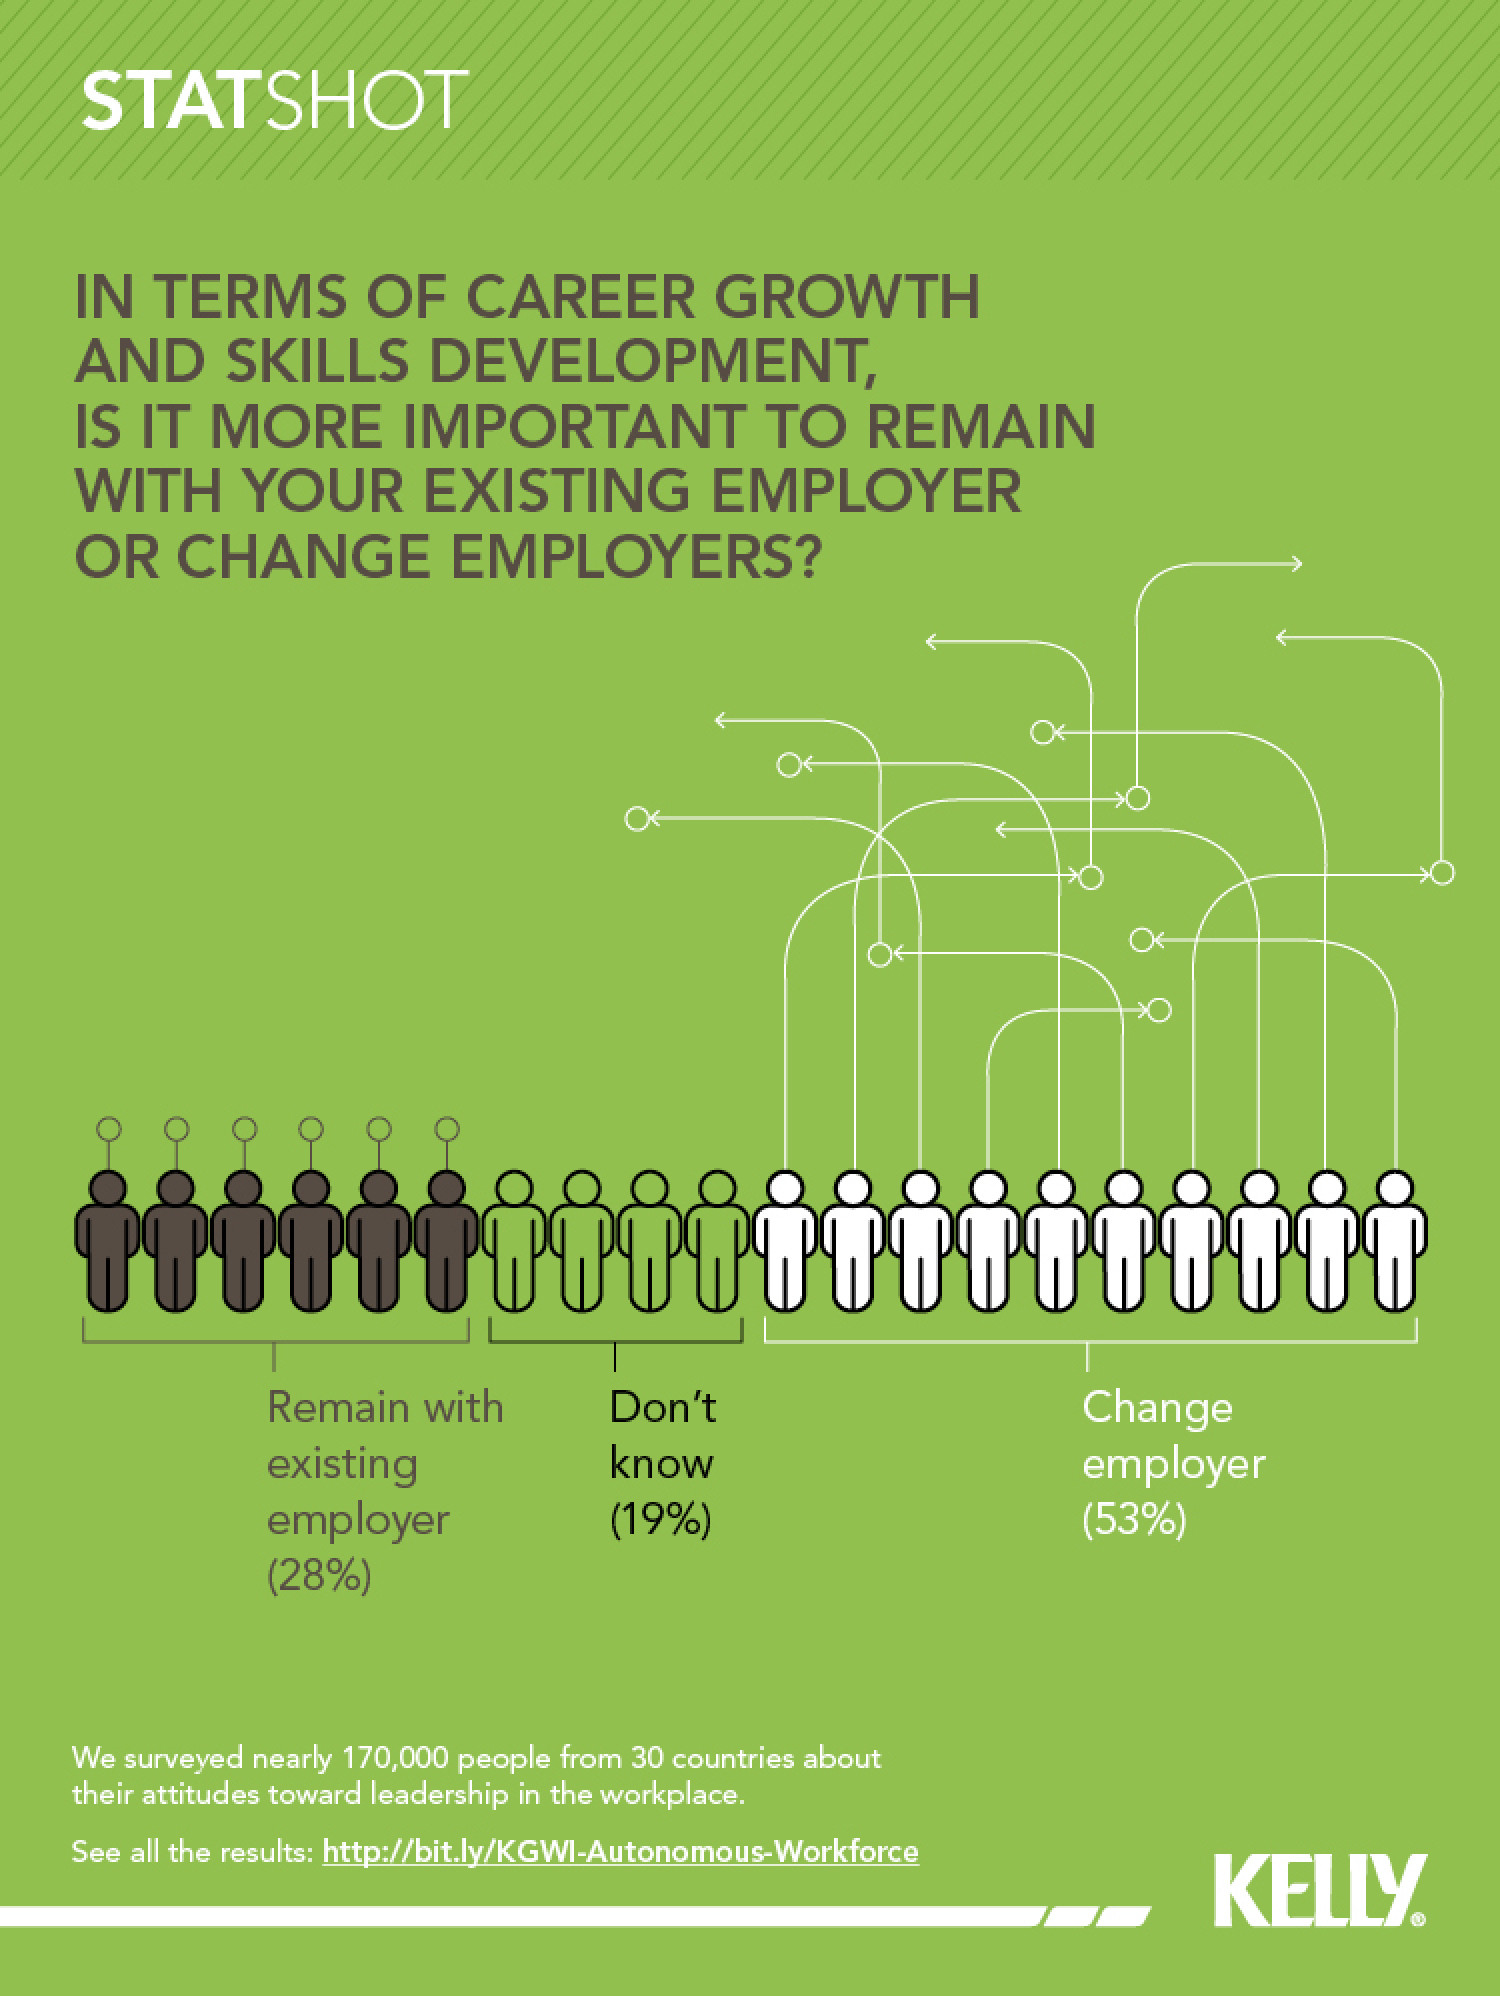 Most people look outside for career development Infographic